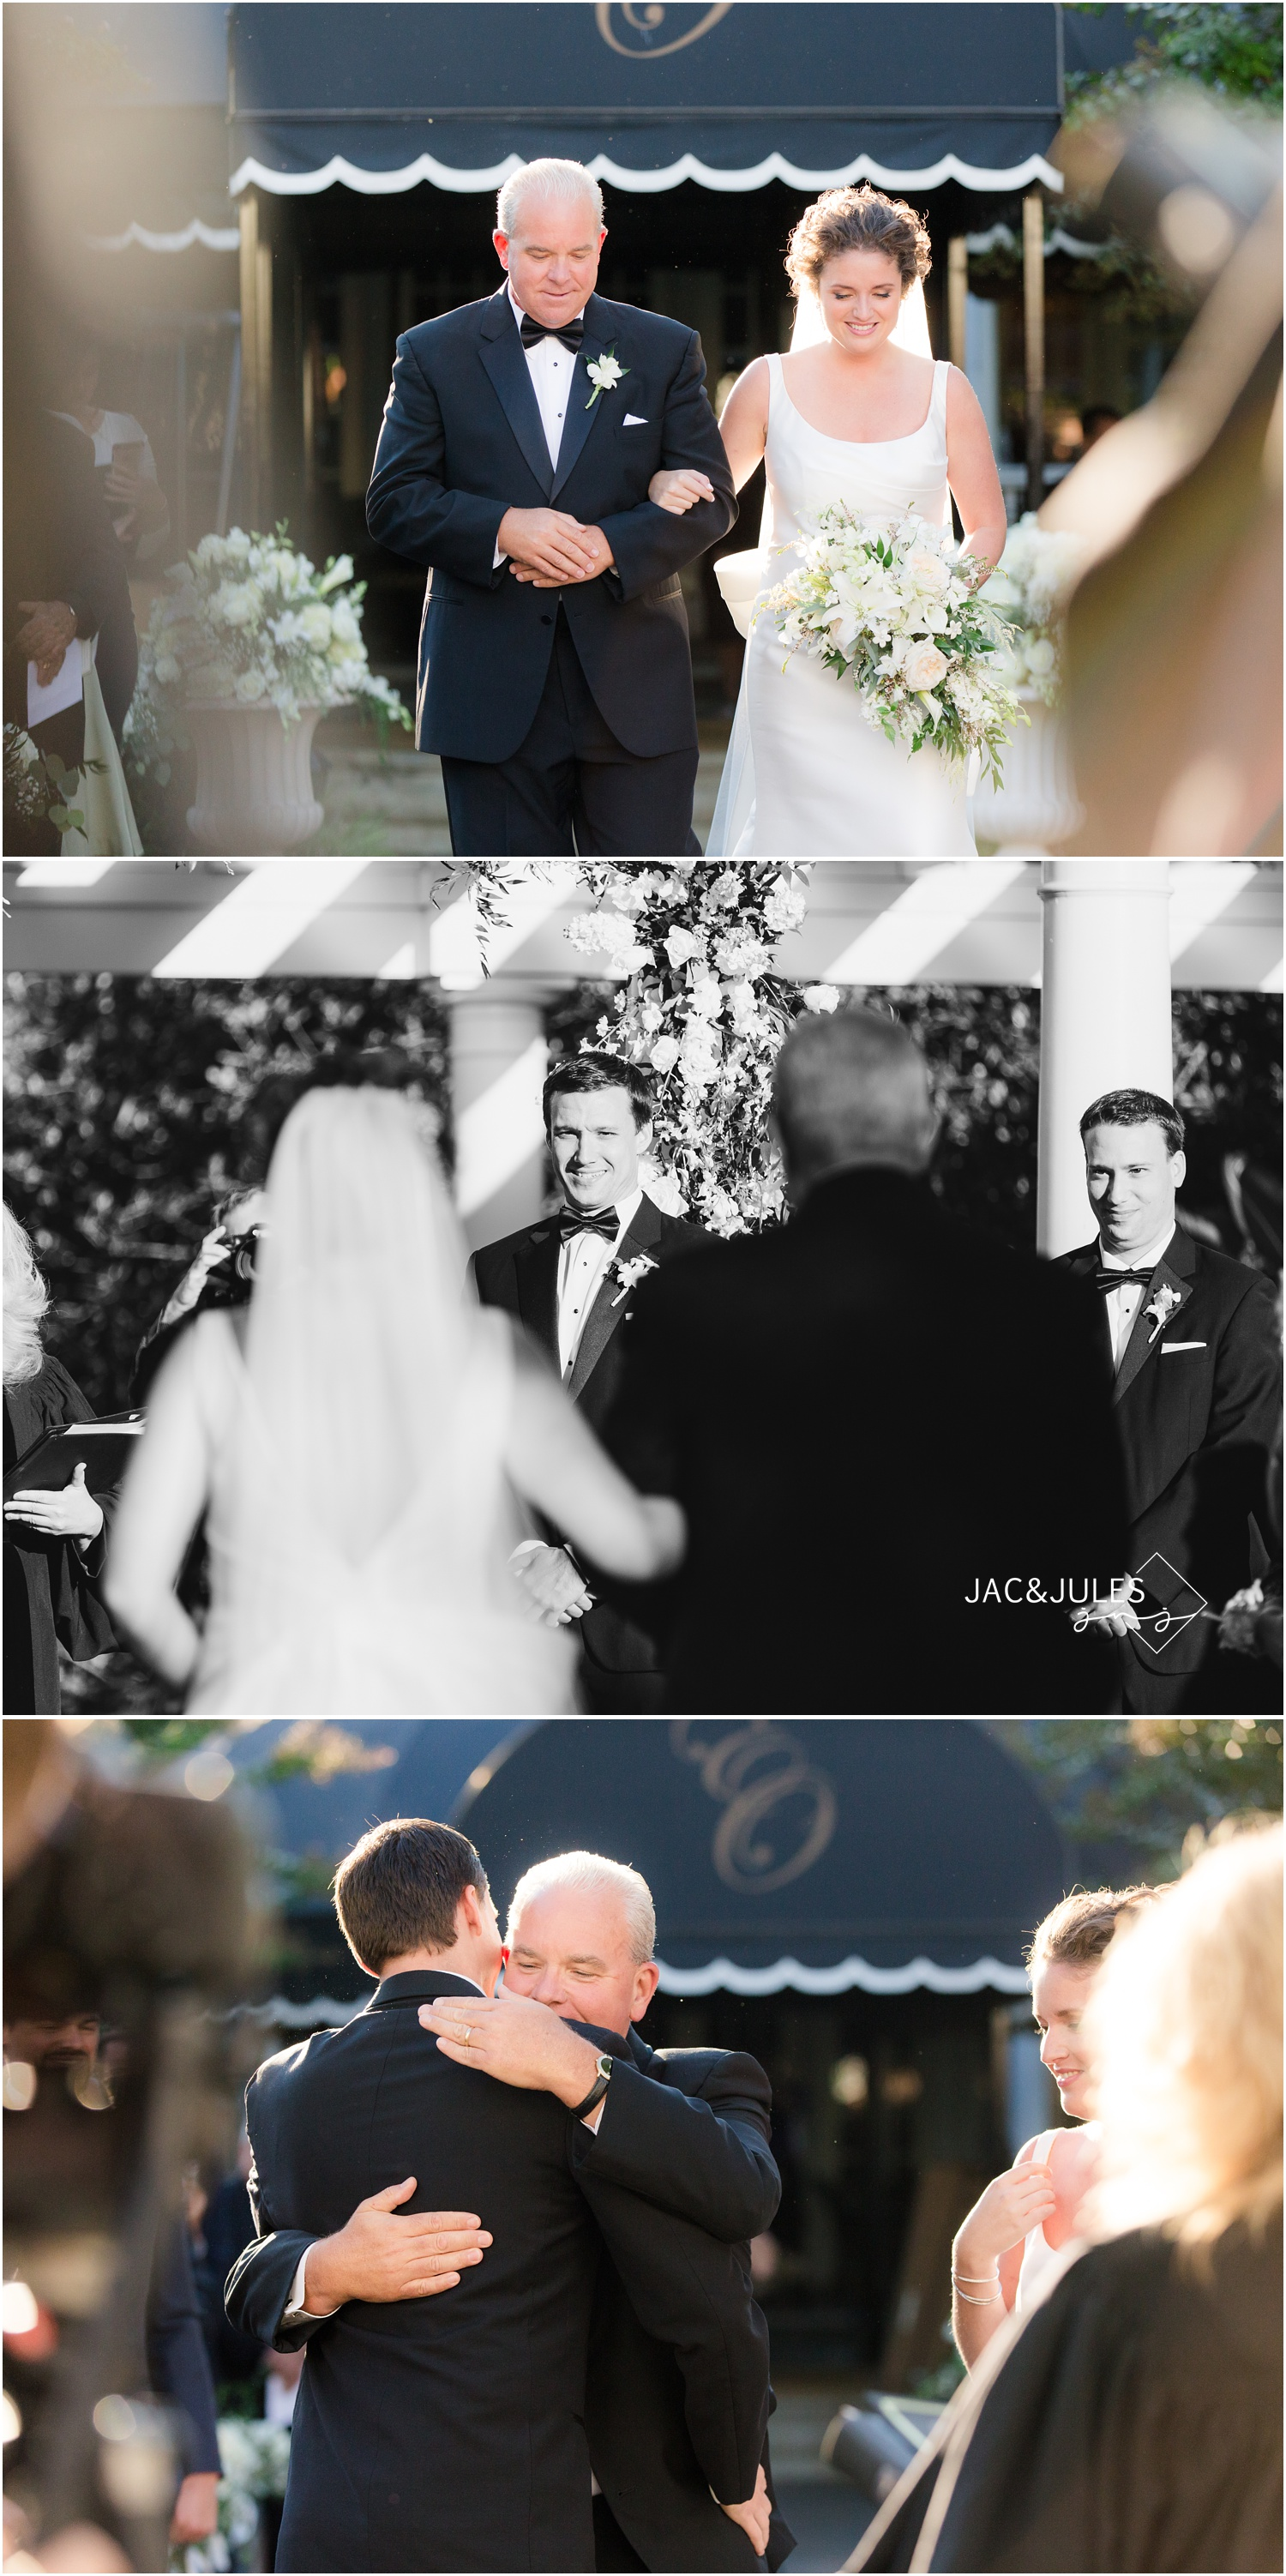 groom's reaction at wedding ceremony at eagle oaks golf and country club in wall, nj.